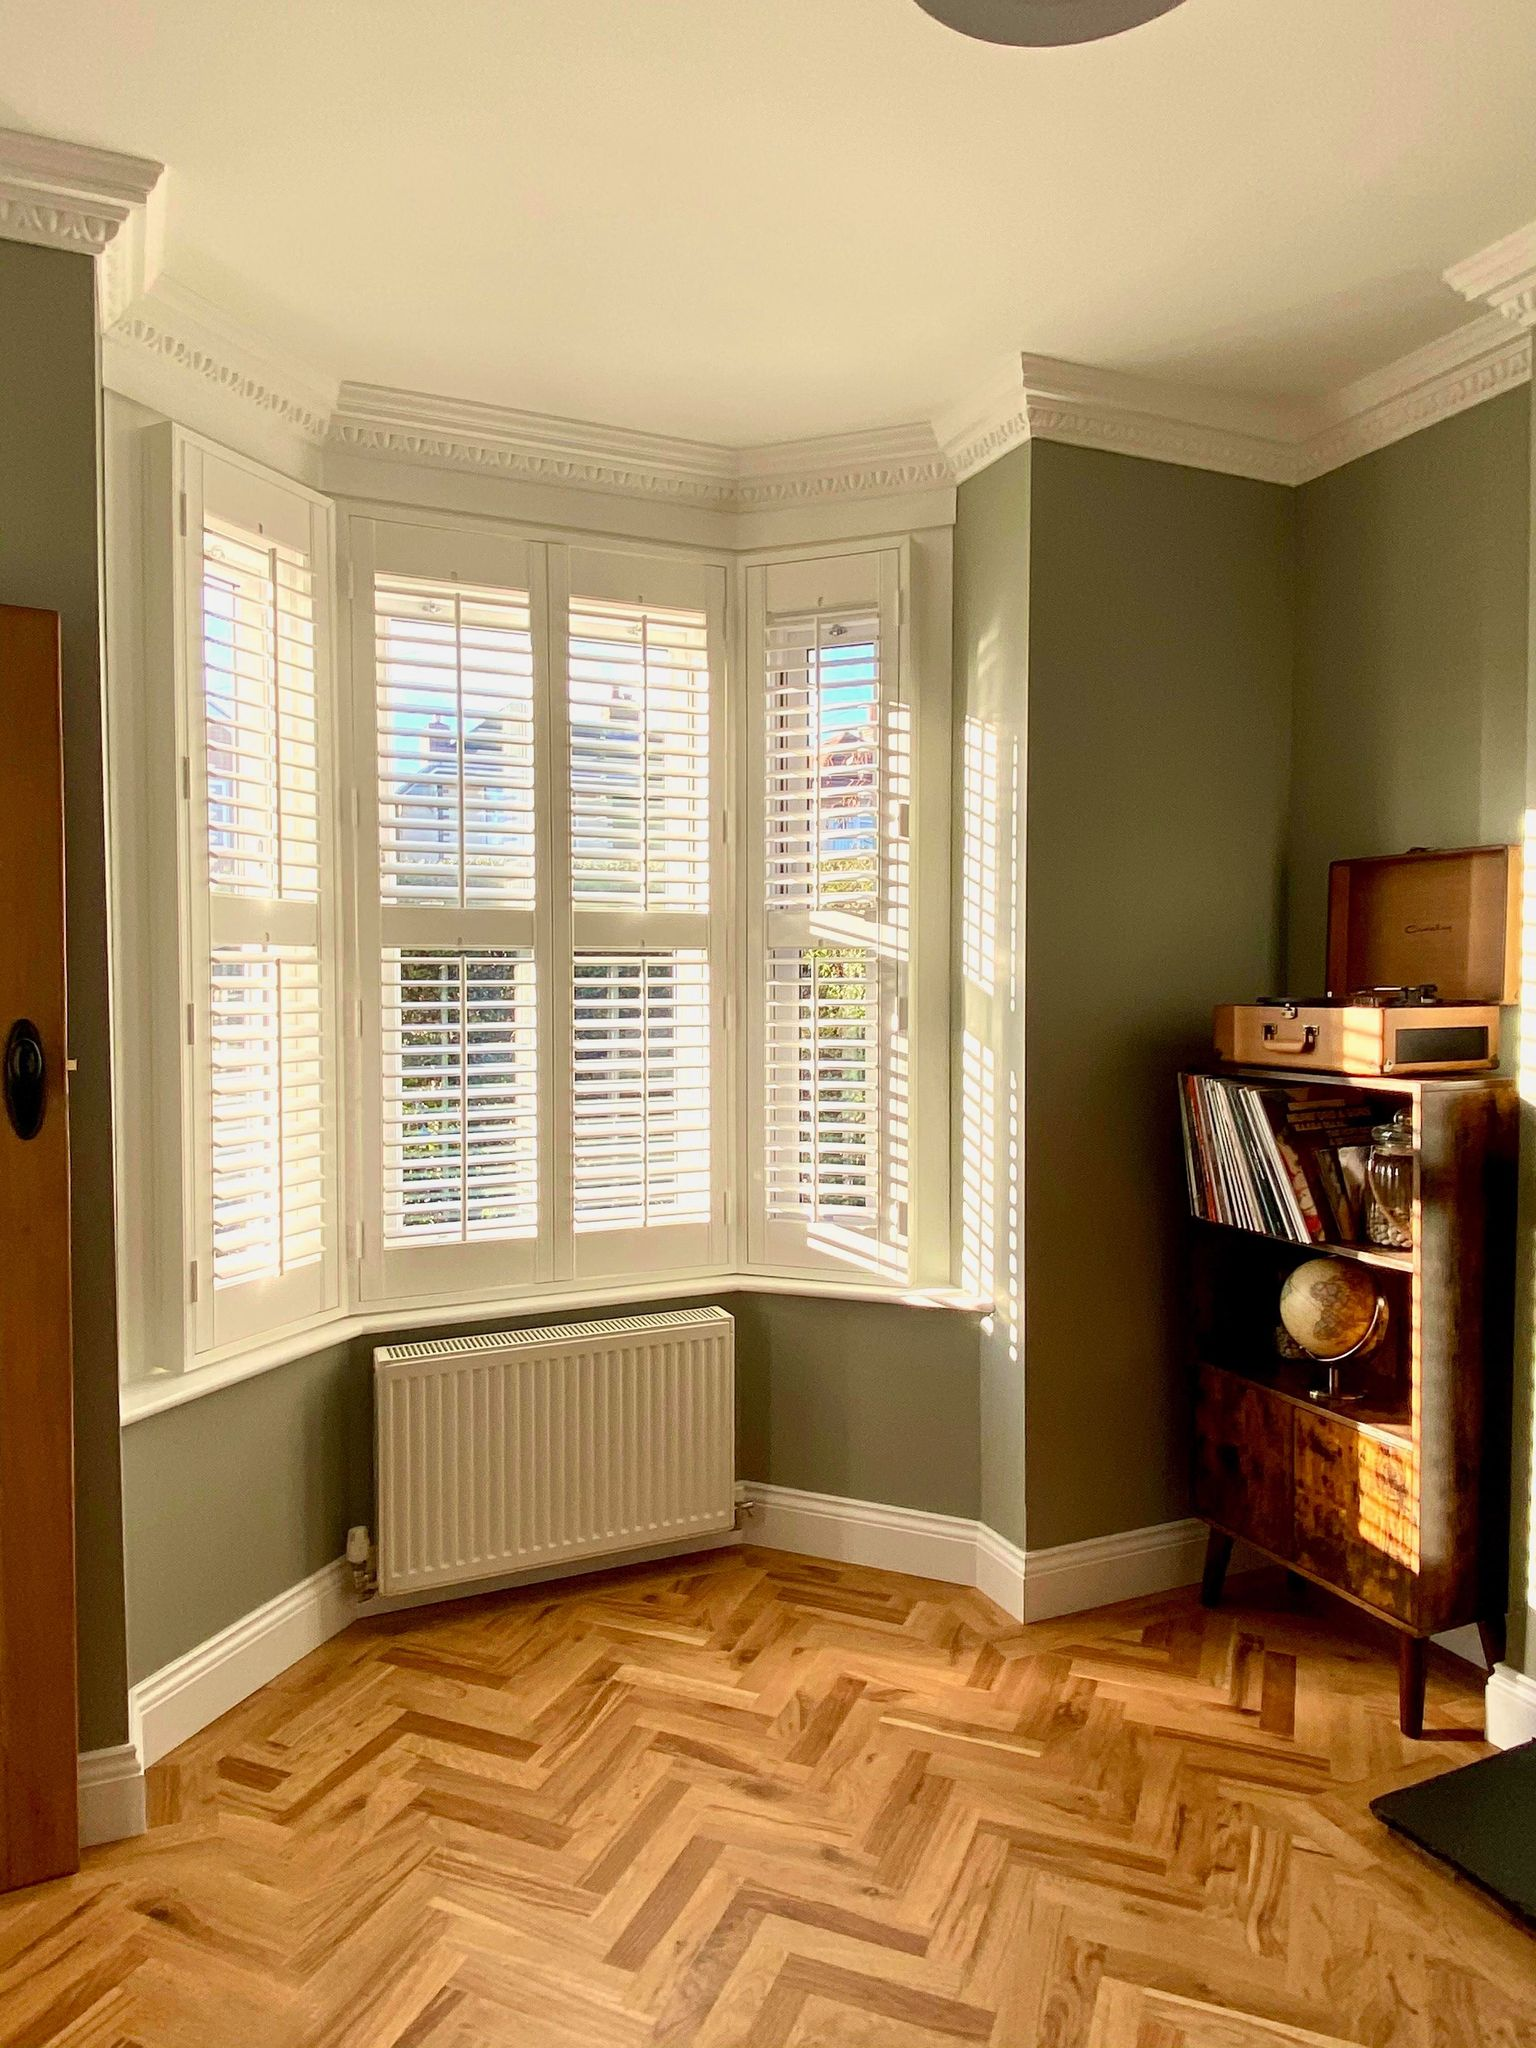 What are the benefits of Window Shutters?